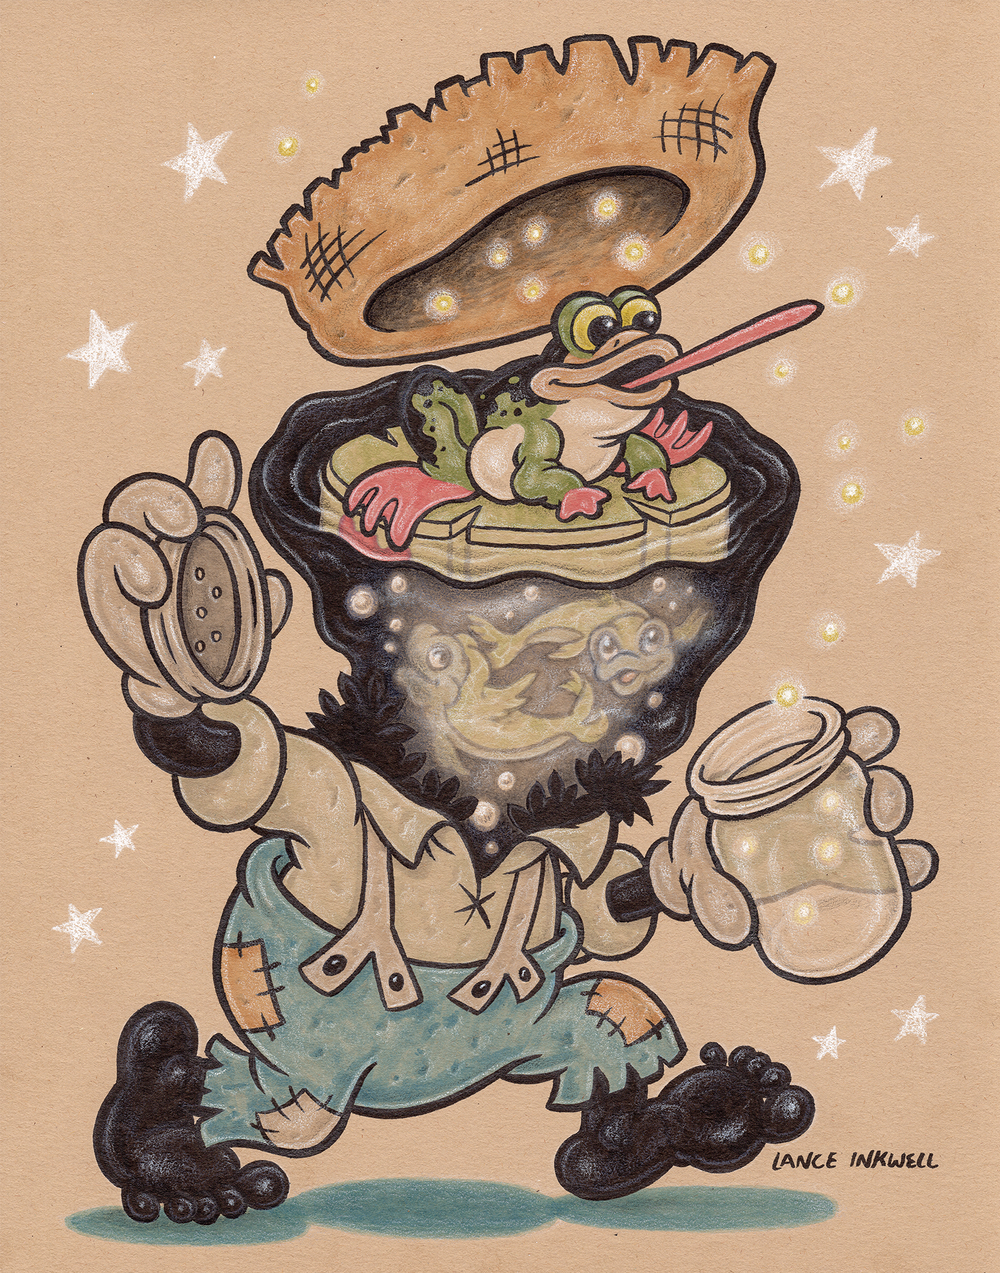 """Catching Fireflies"" - 11""x14"" Ink, Marker, and Color Pencil on Toned Paper.  SOLD"